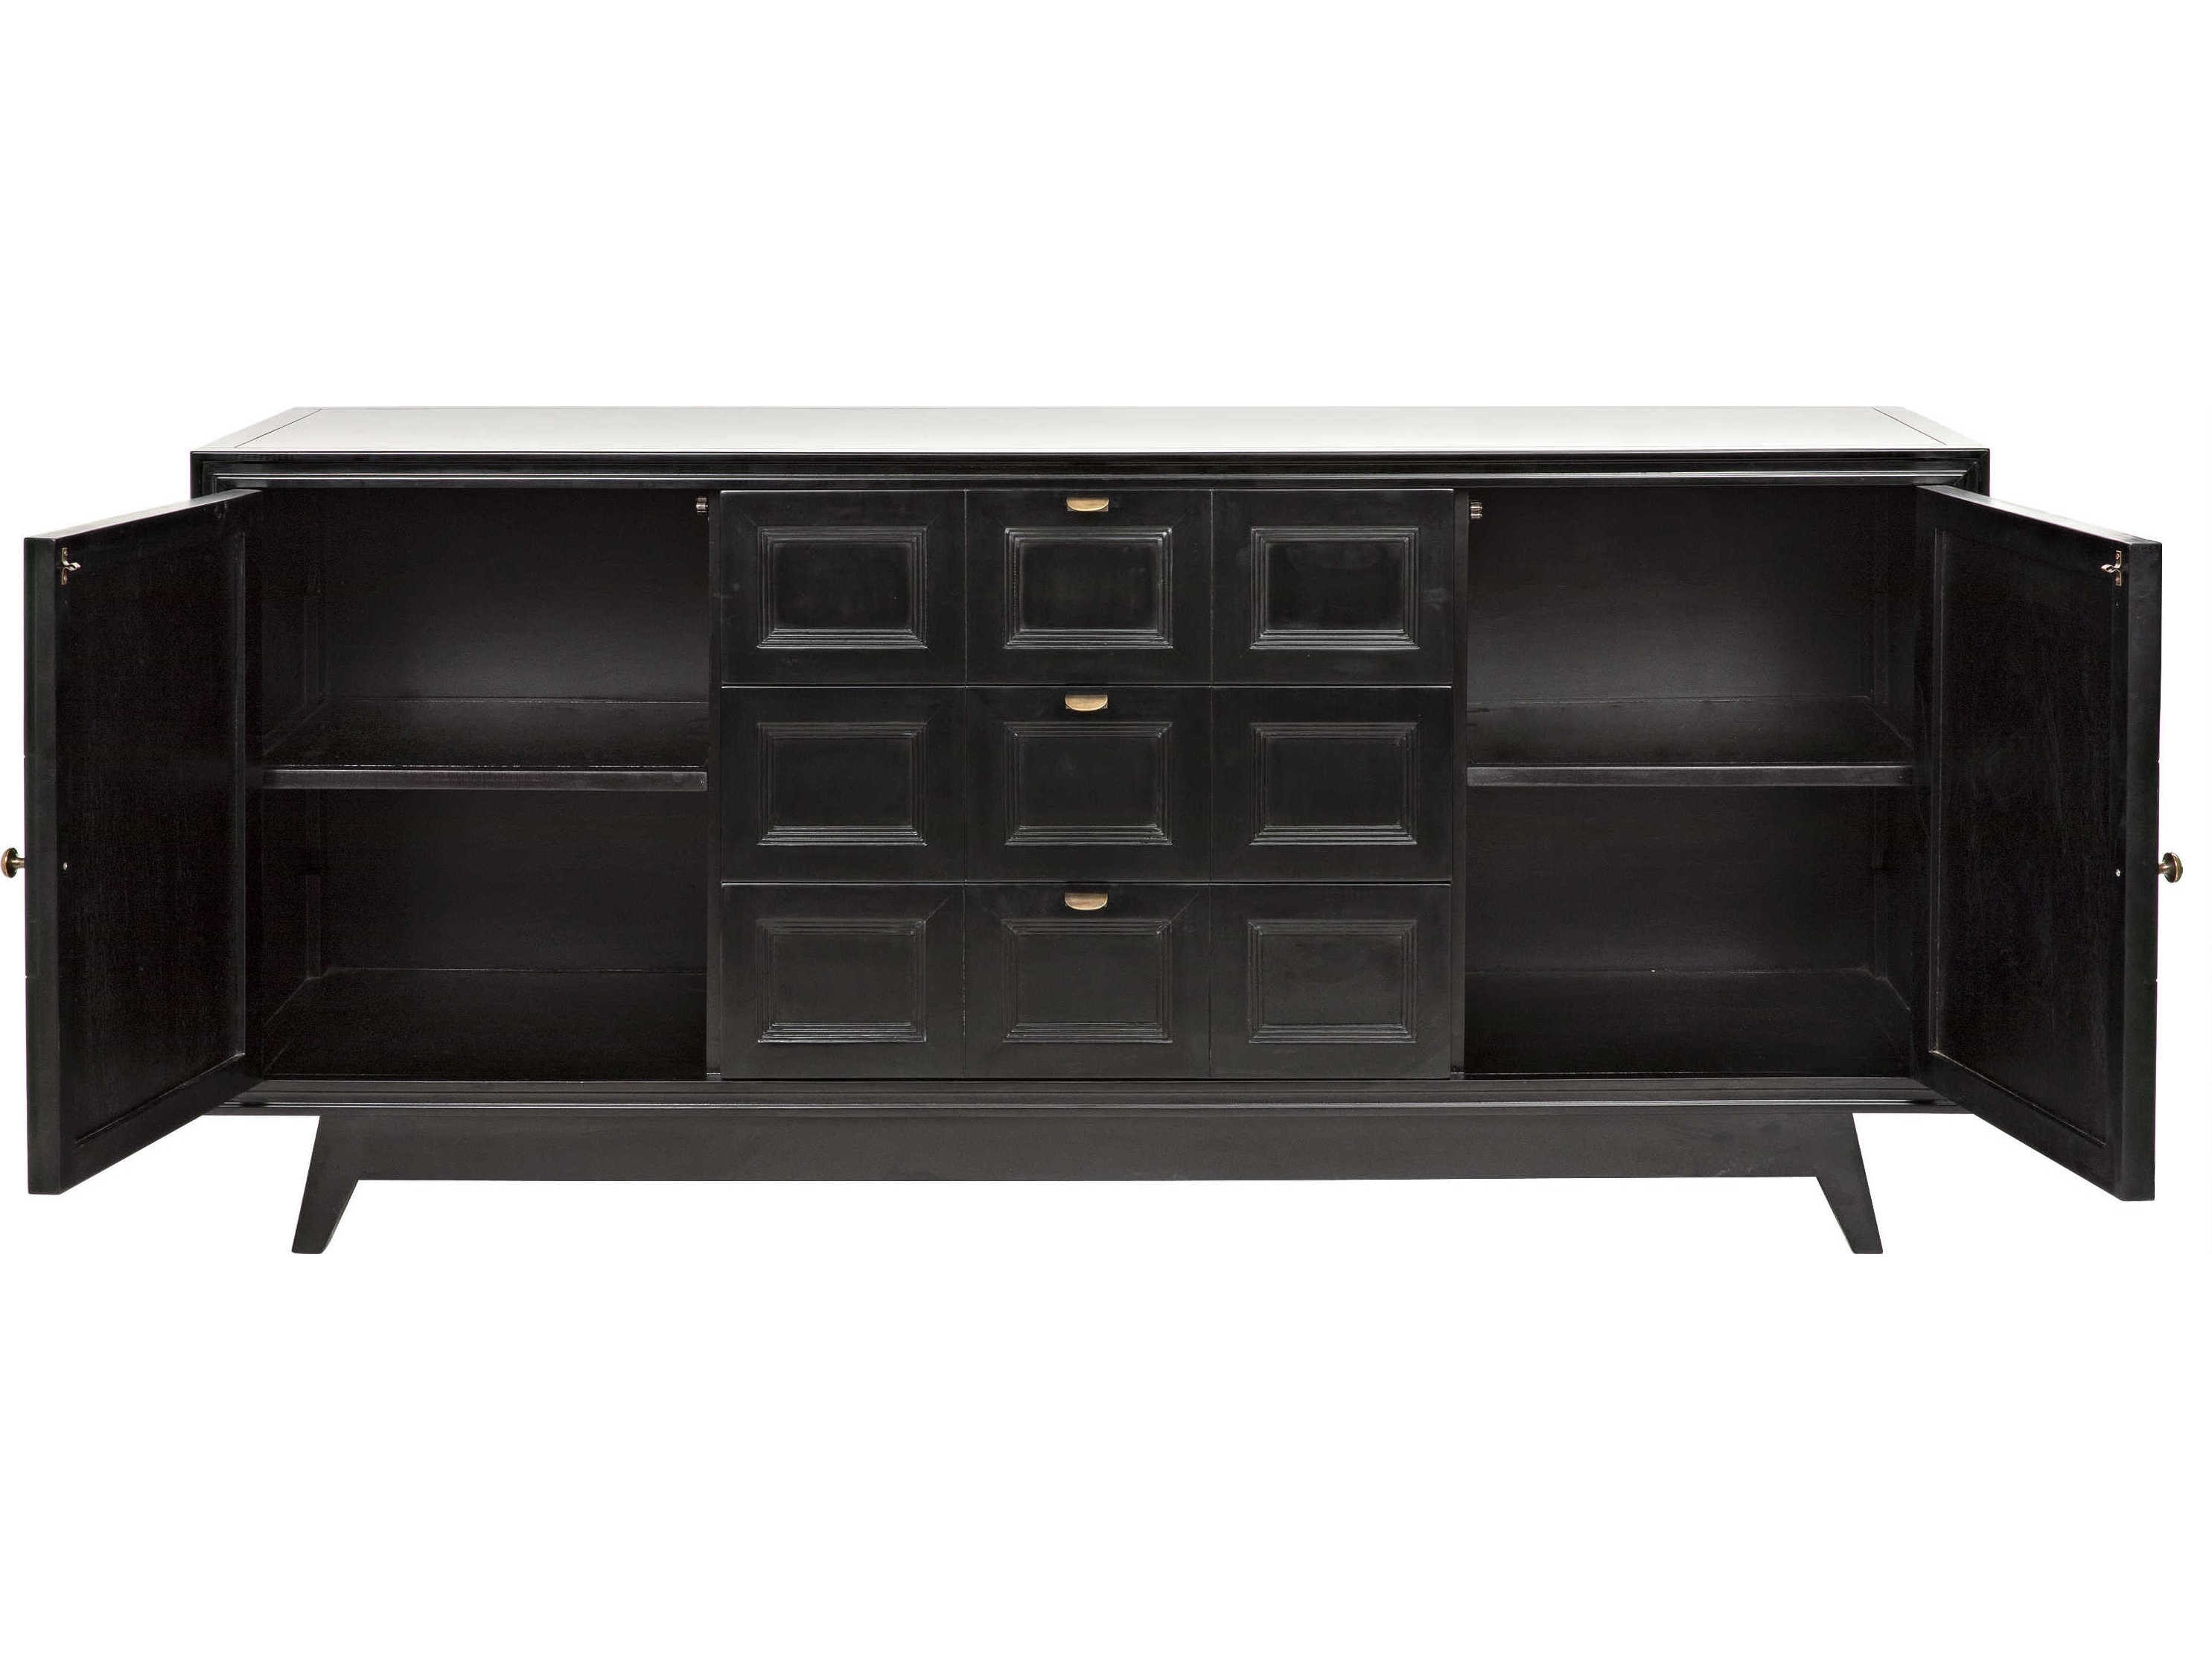 Noir Furniture Wyatt Charcoal 73'' X 23'' Sideboard | Noigcon249Ch pertaining to Wyatt Sideboards (Image 11 of 30)